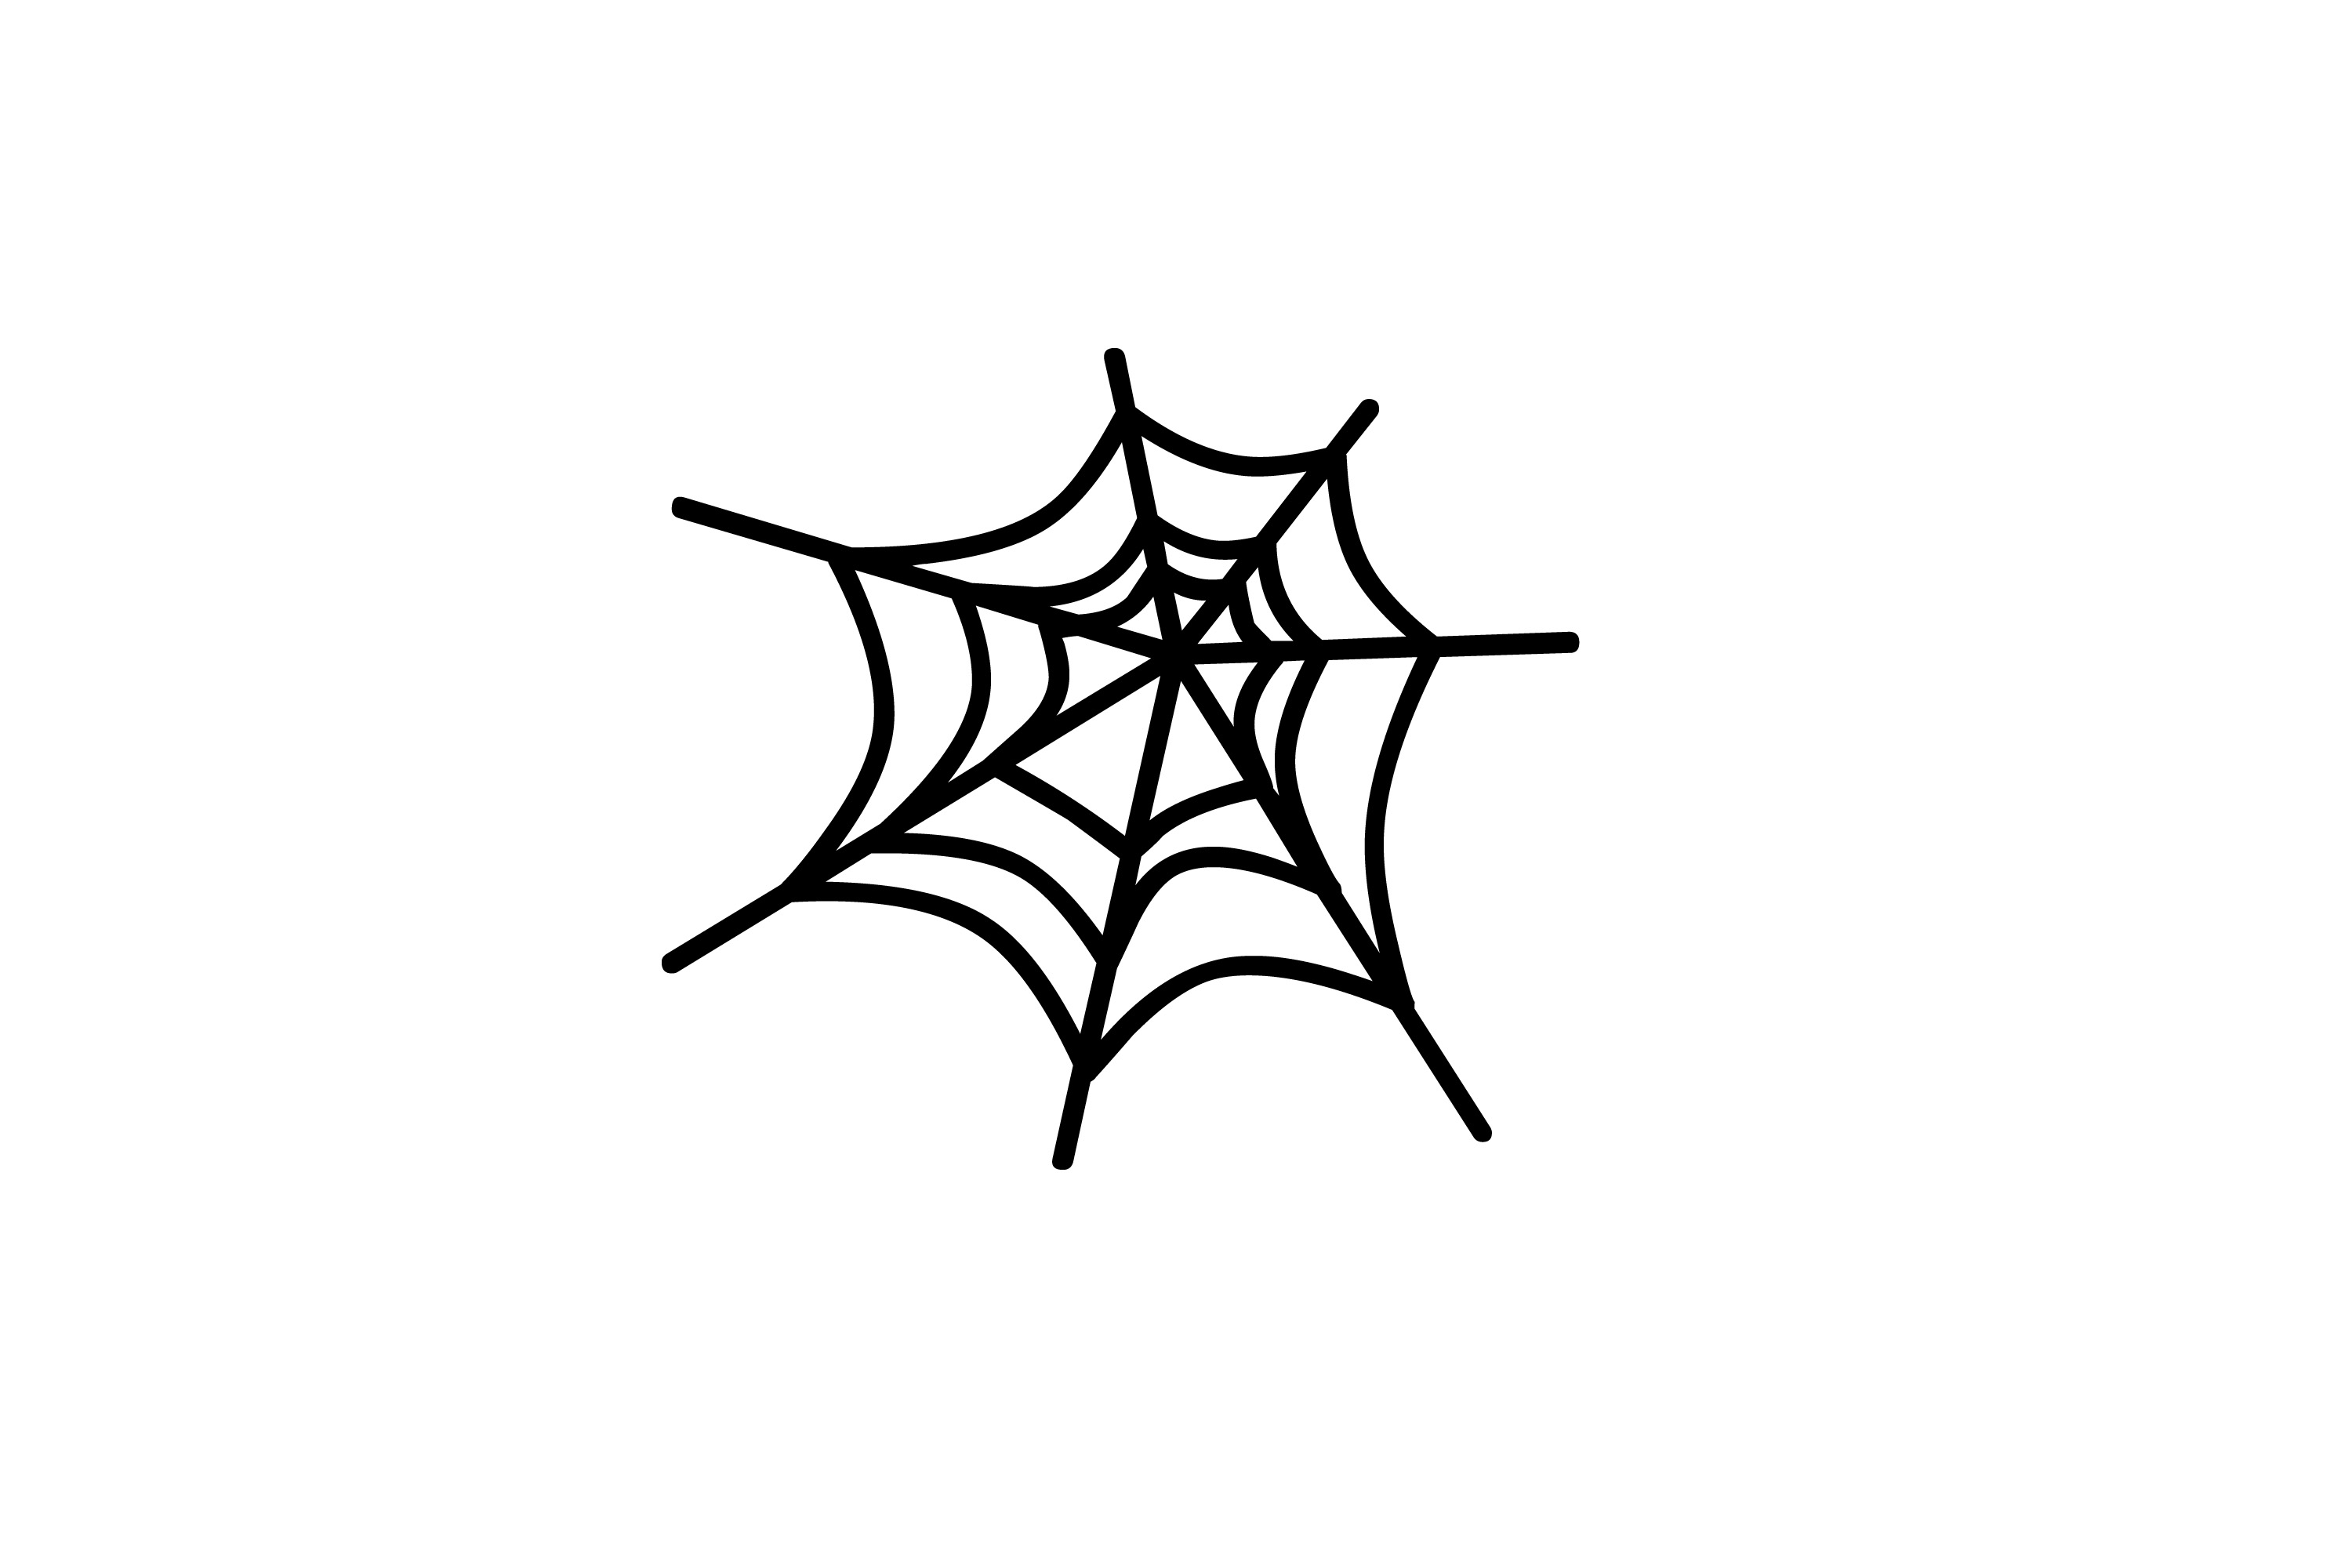 Spider web border clipart free images 4 5